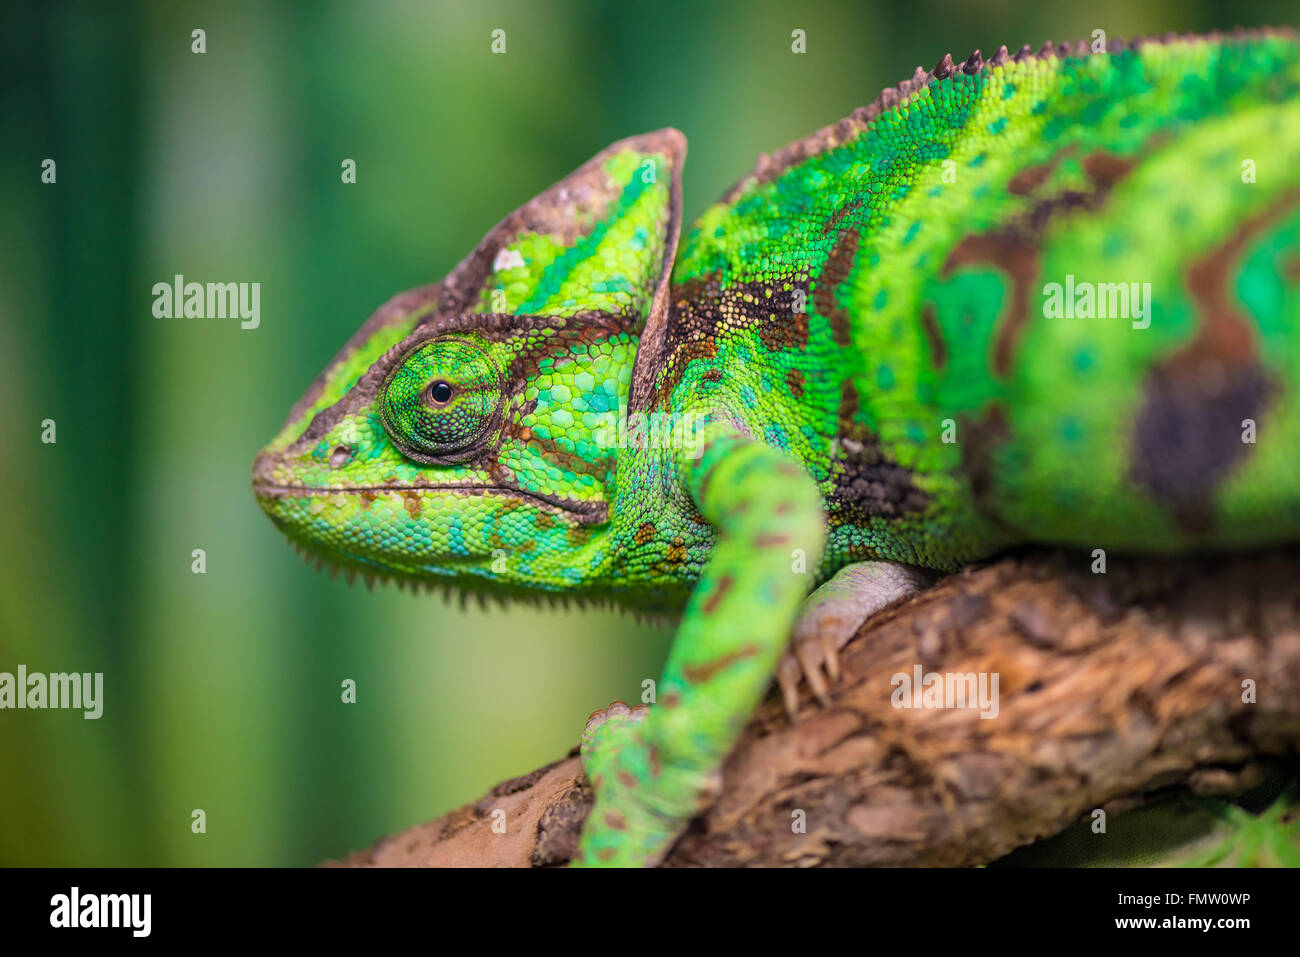 green chameleon on a branch looking at the camera close-up - Stock Image